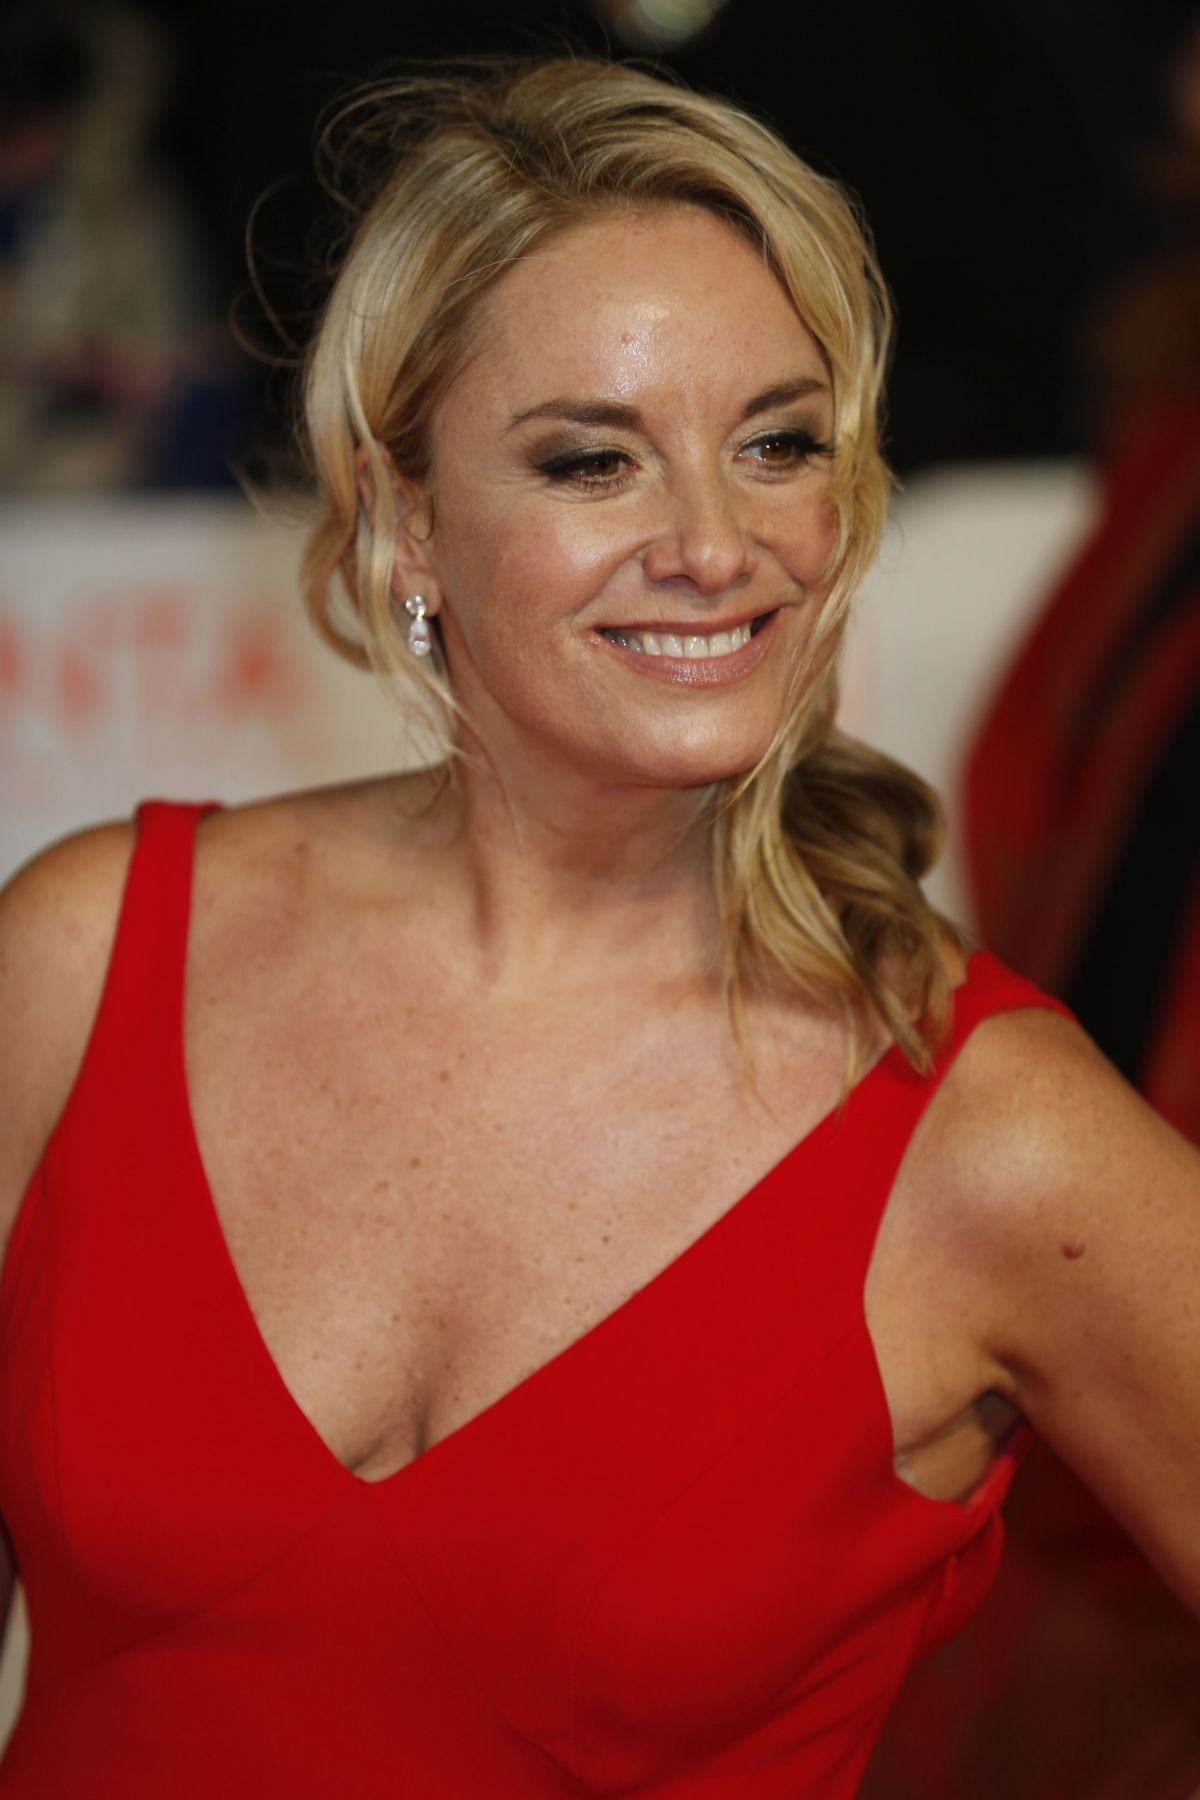 tamzin outhwaite - photo #15